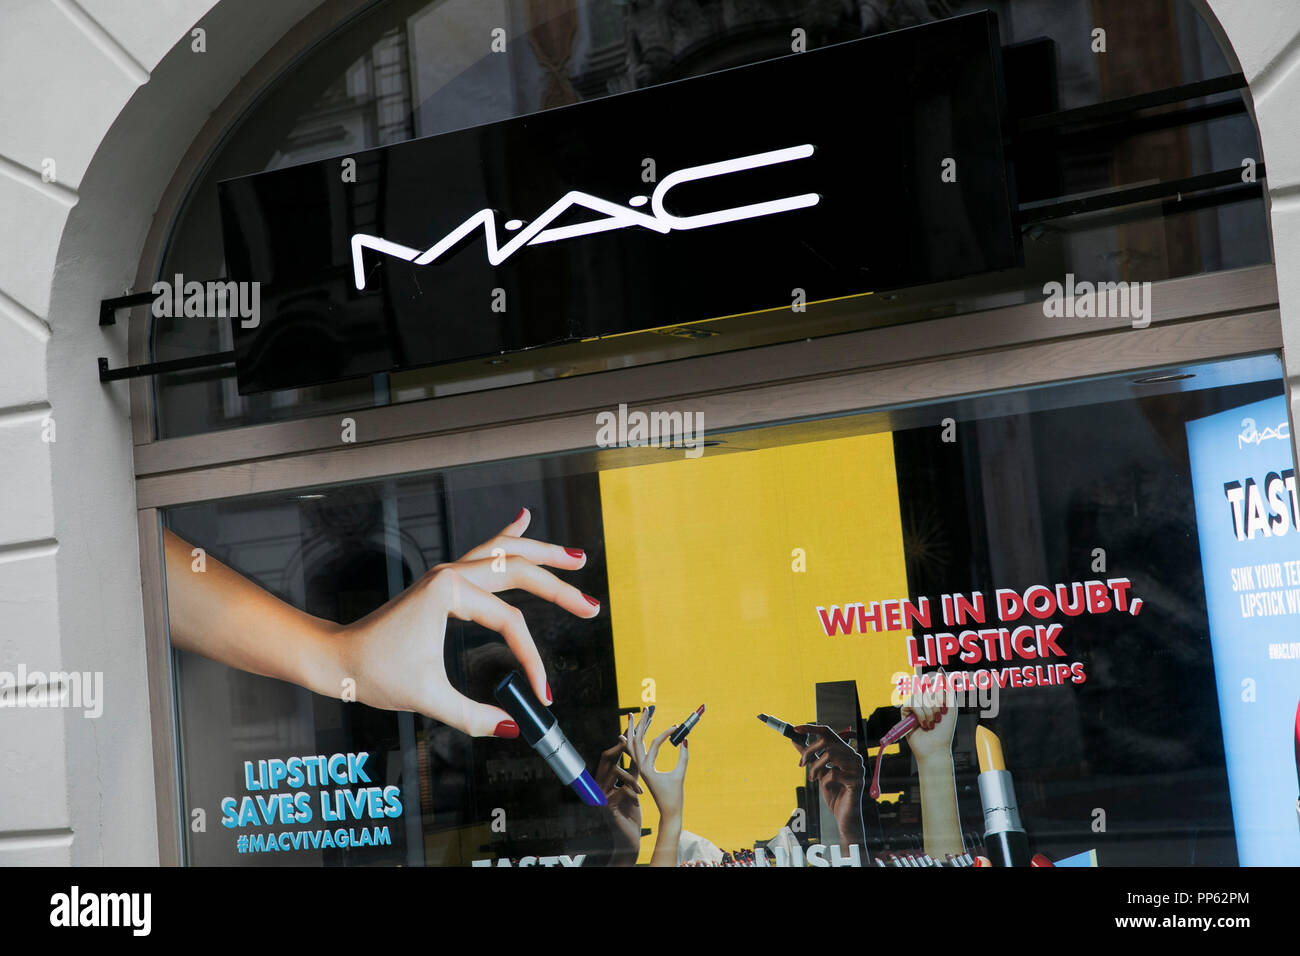 Mac Cosmetics Stock Photos & Mac Cosmetics Stock Images - Alamy